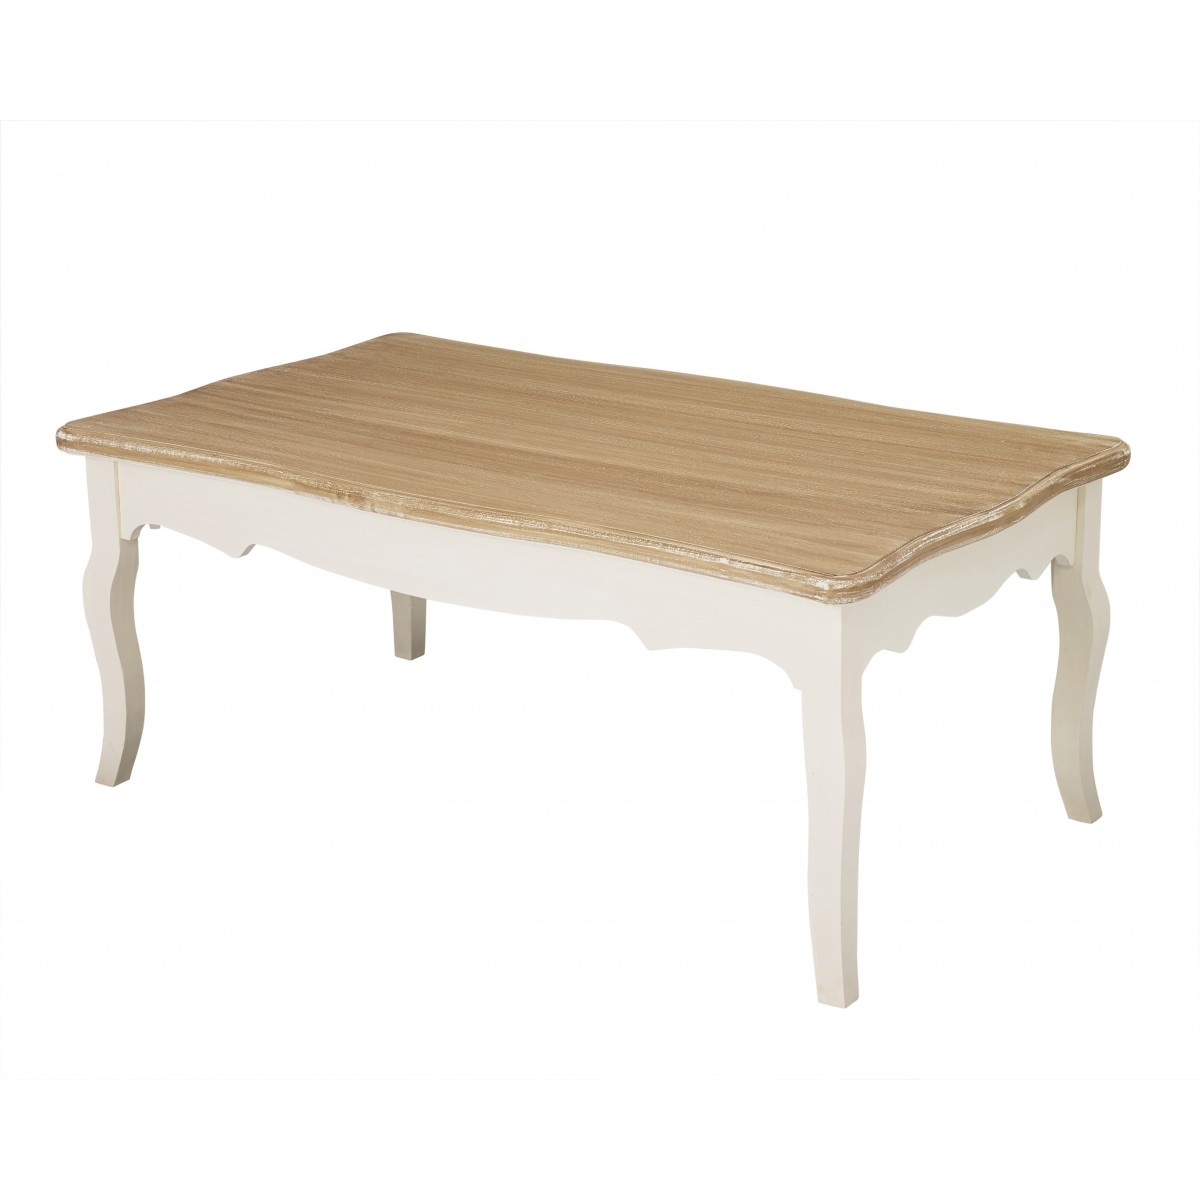 Juliette 'Shabby Chic' Coffee Table